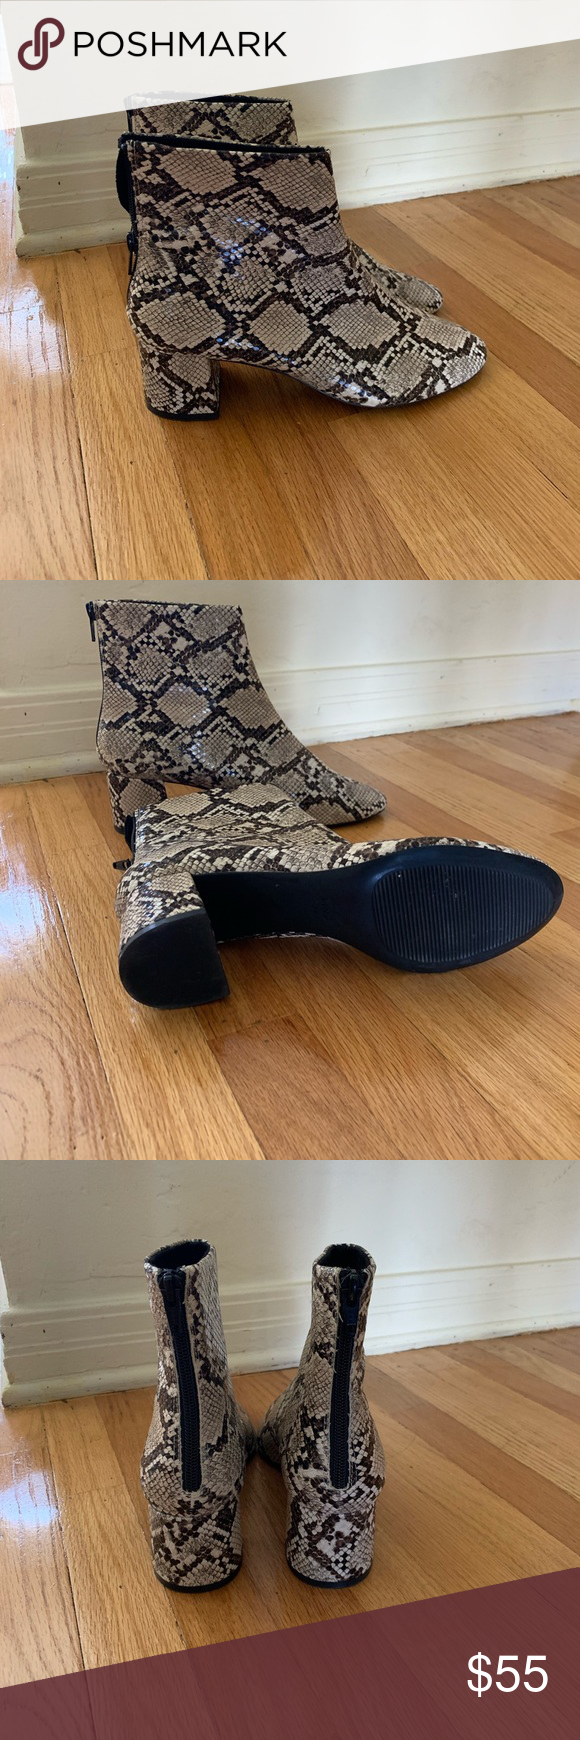 Mango snake print boots Worn once for a couple hours! They are really comfortable. Size 39 fits an 8.5 Mango Shoes Ankle Boots & Booties #snakeprintbootsoutfit